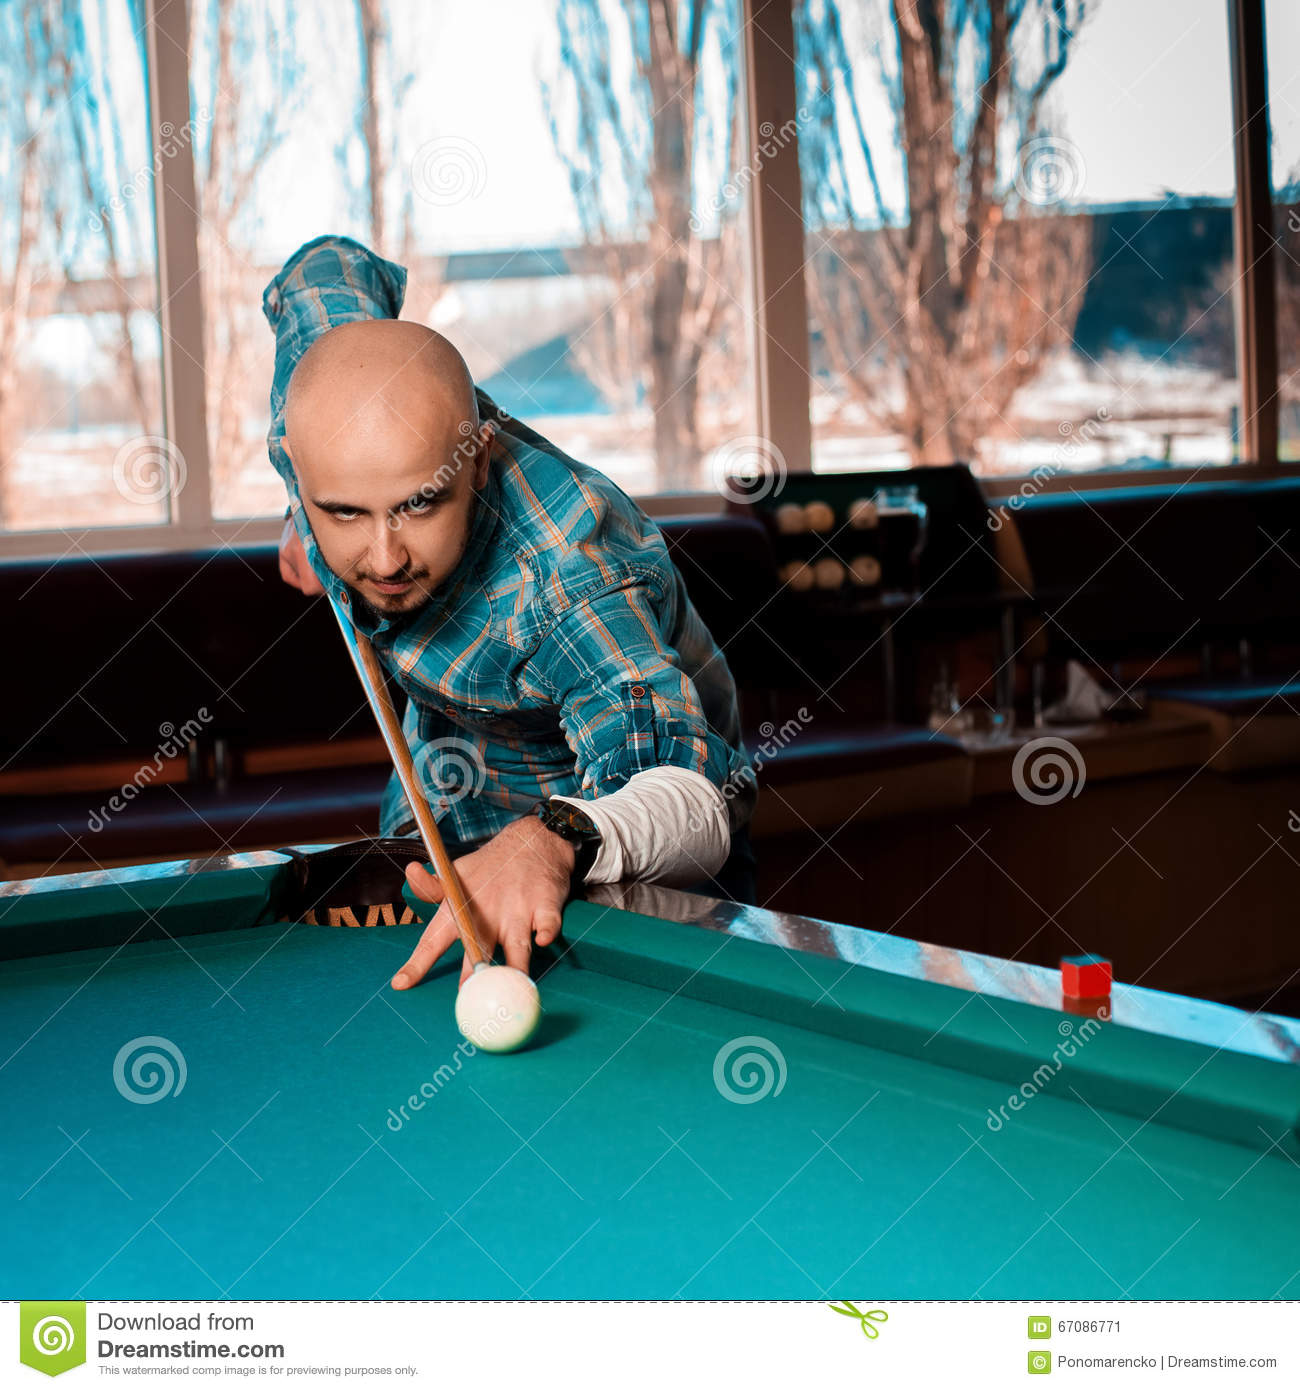 Square Photo Man preparing to hit the cue ball on a pool billiar